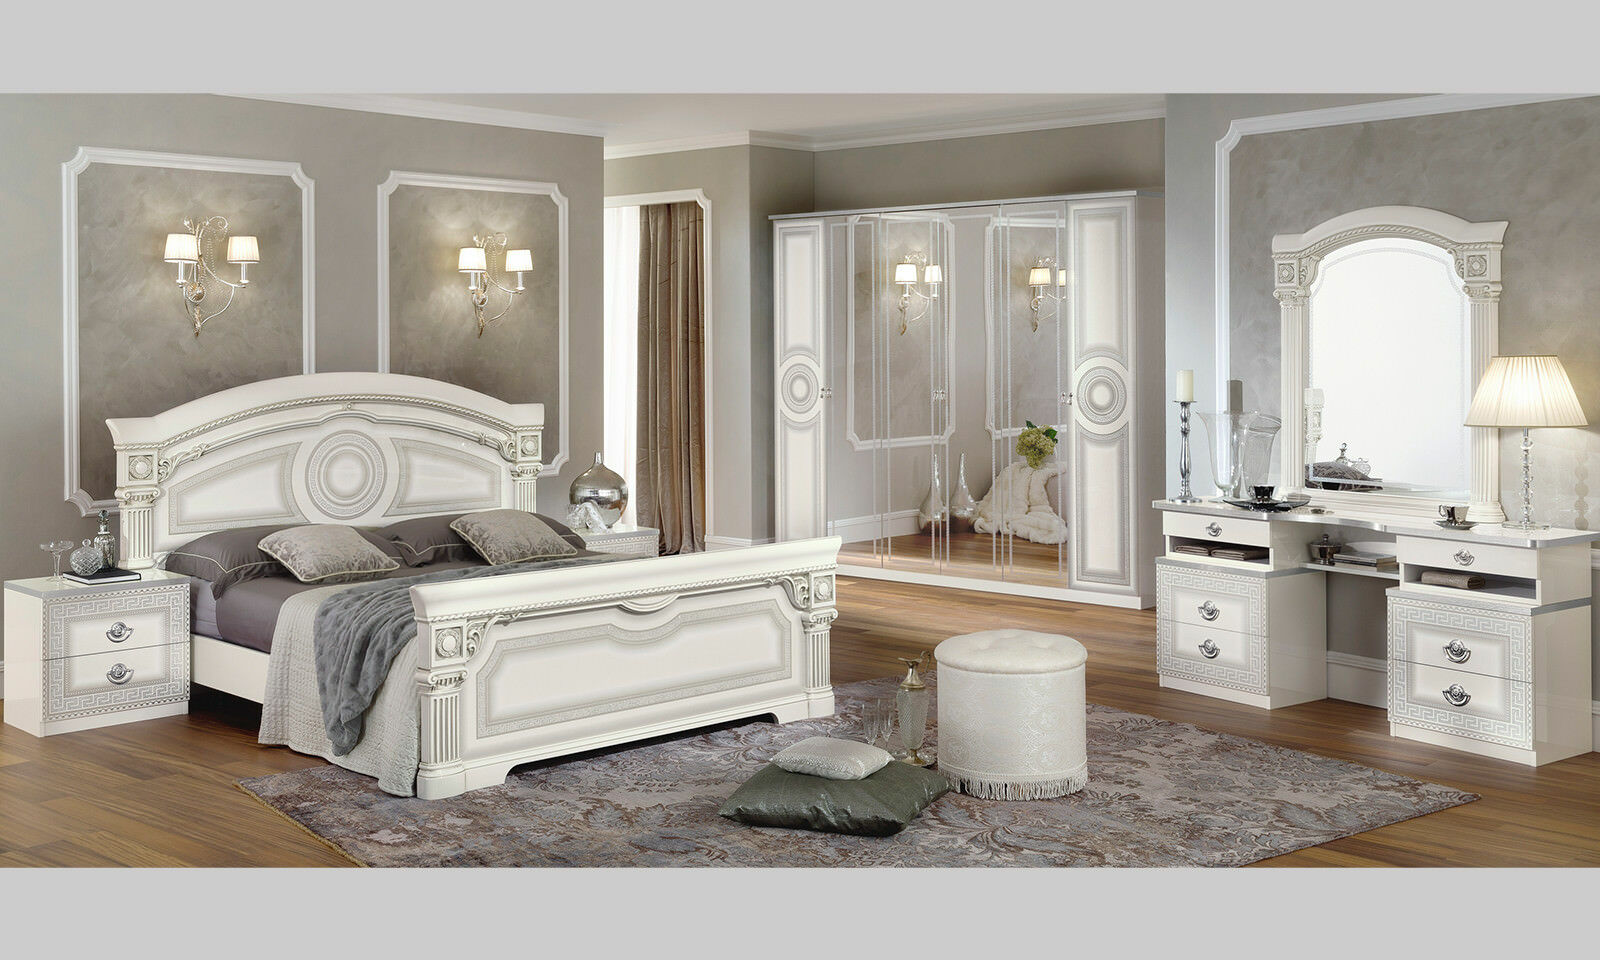 komplett schlafzimmer nussbaum schlafzimmer dunkle m bel. Black Bedroom Furniture Sets. Home Design Ideas